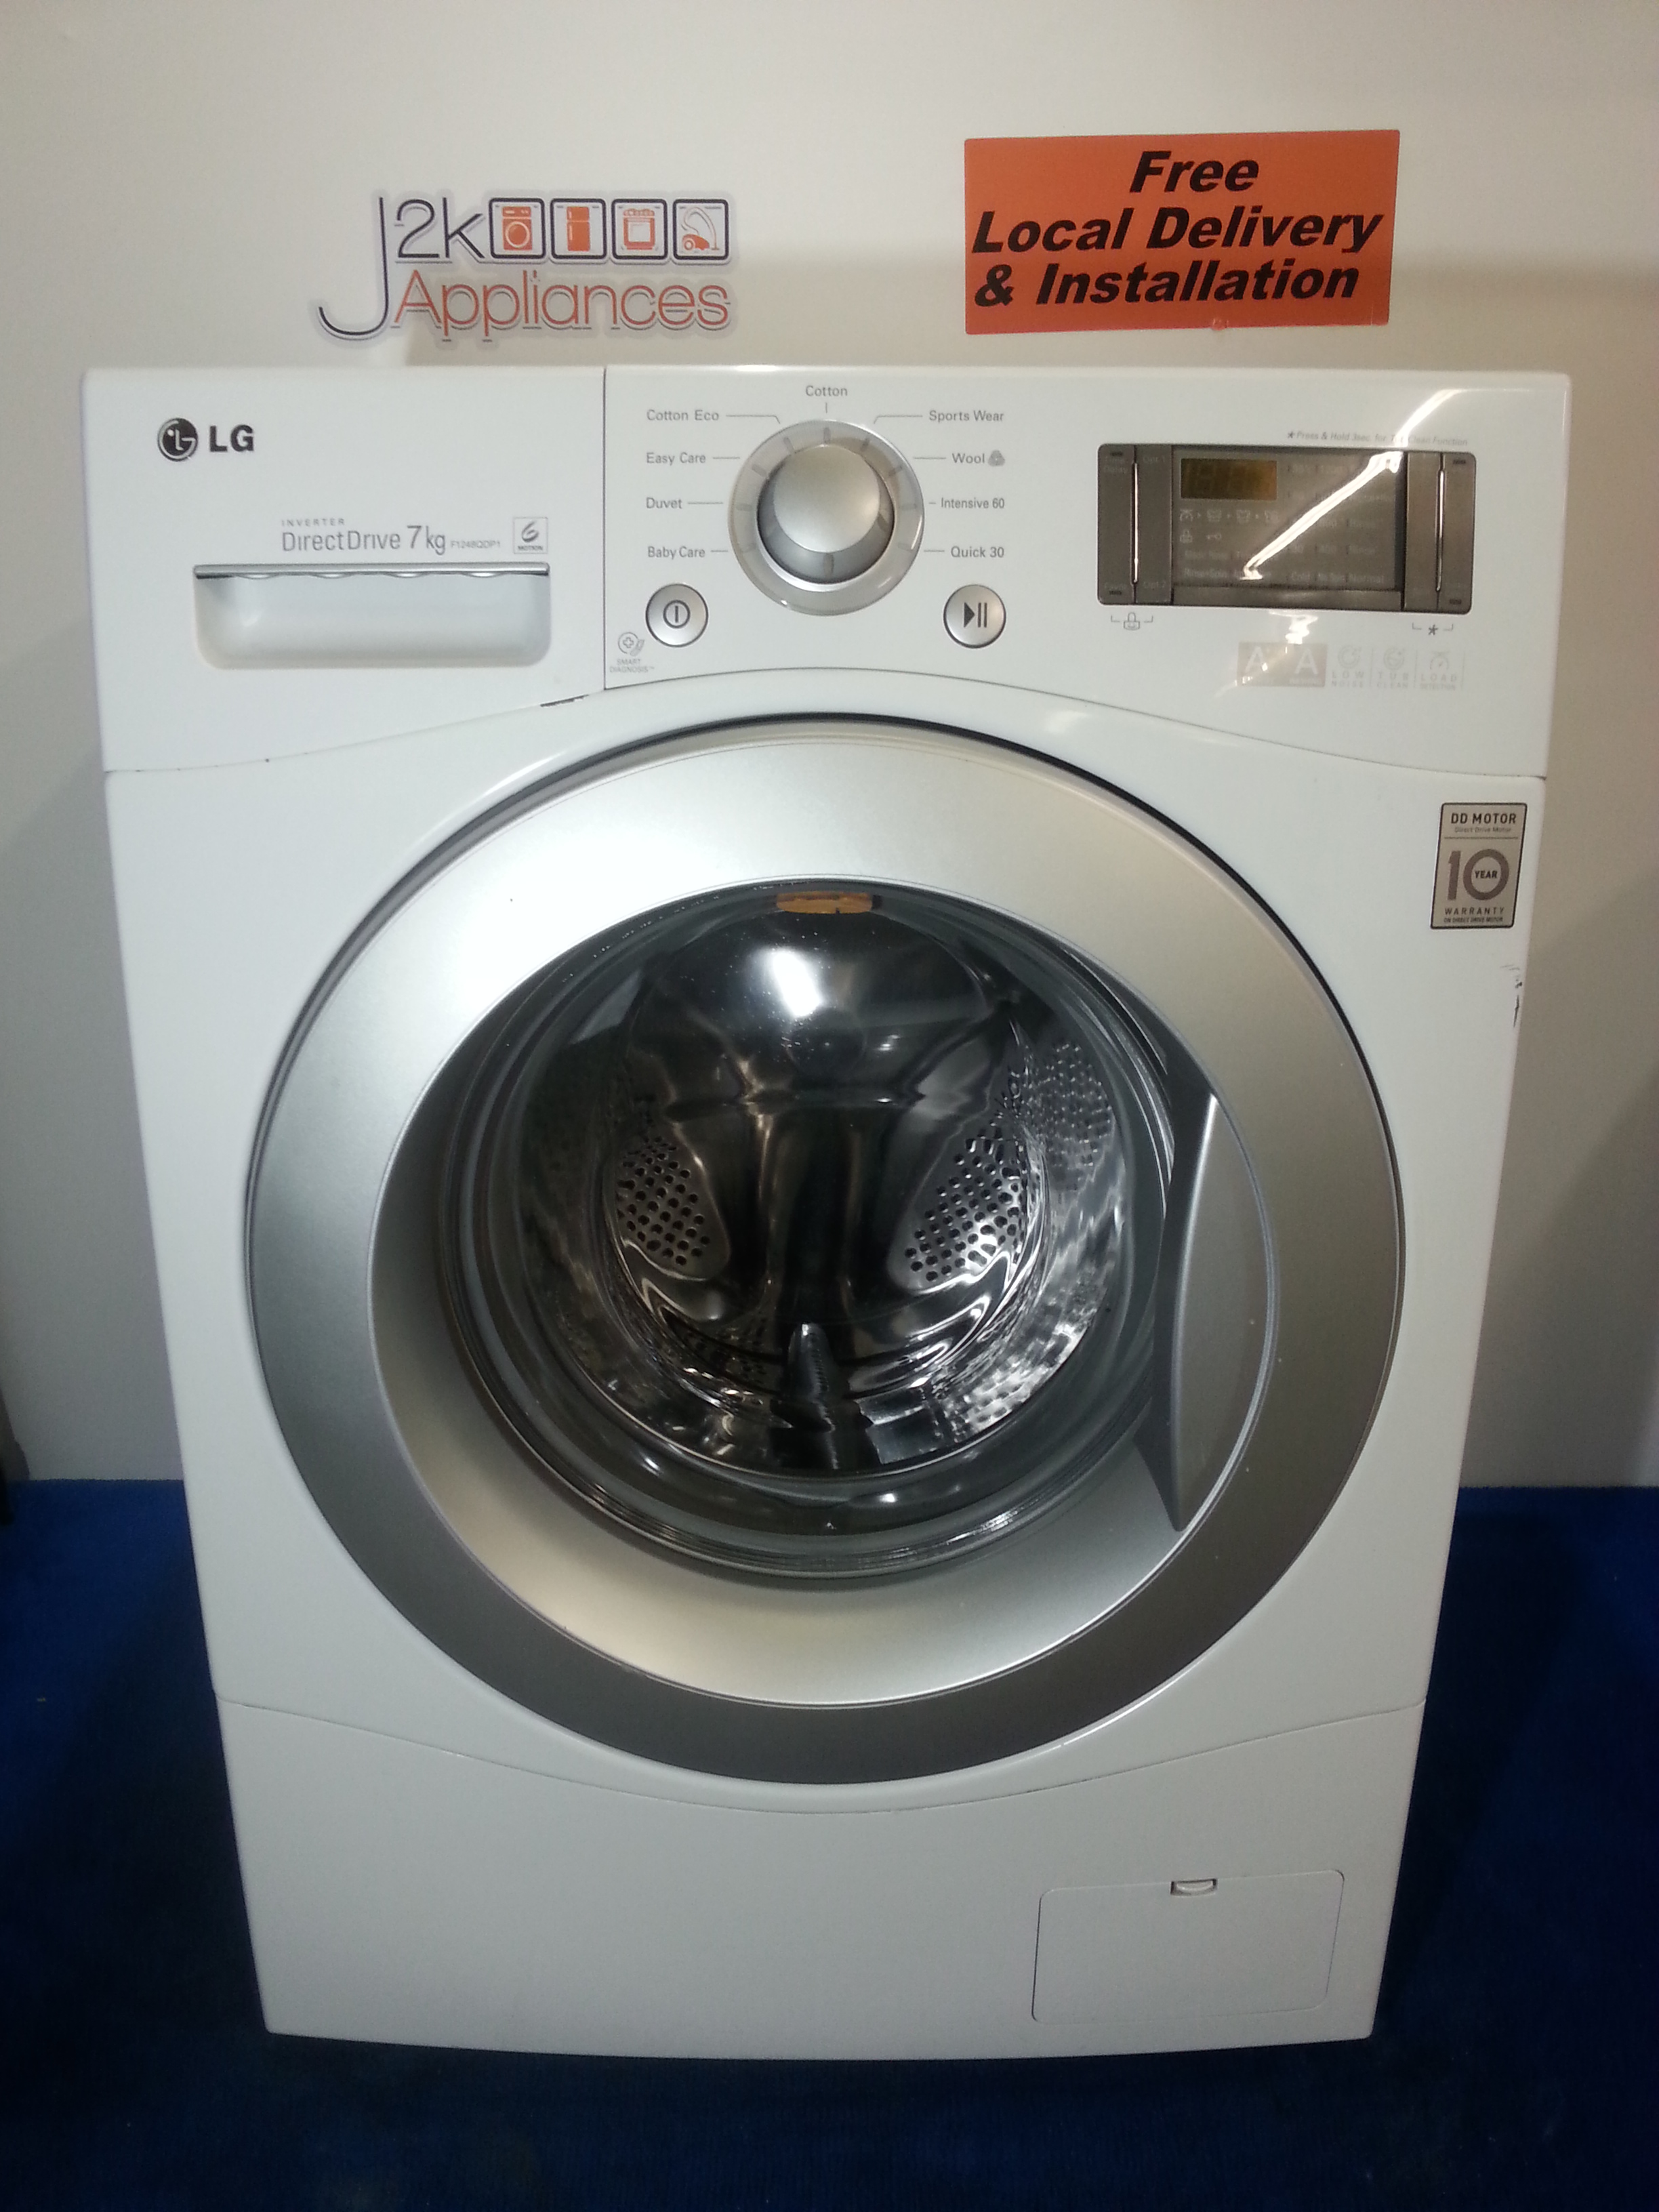 Wm100 lg direct drive 7 kg 1200 spin washing machine for Lg washing machine motor price